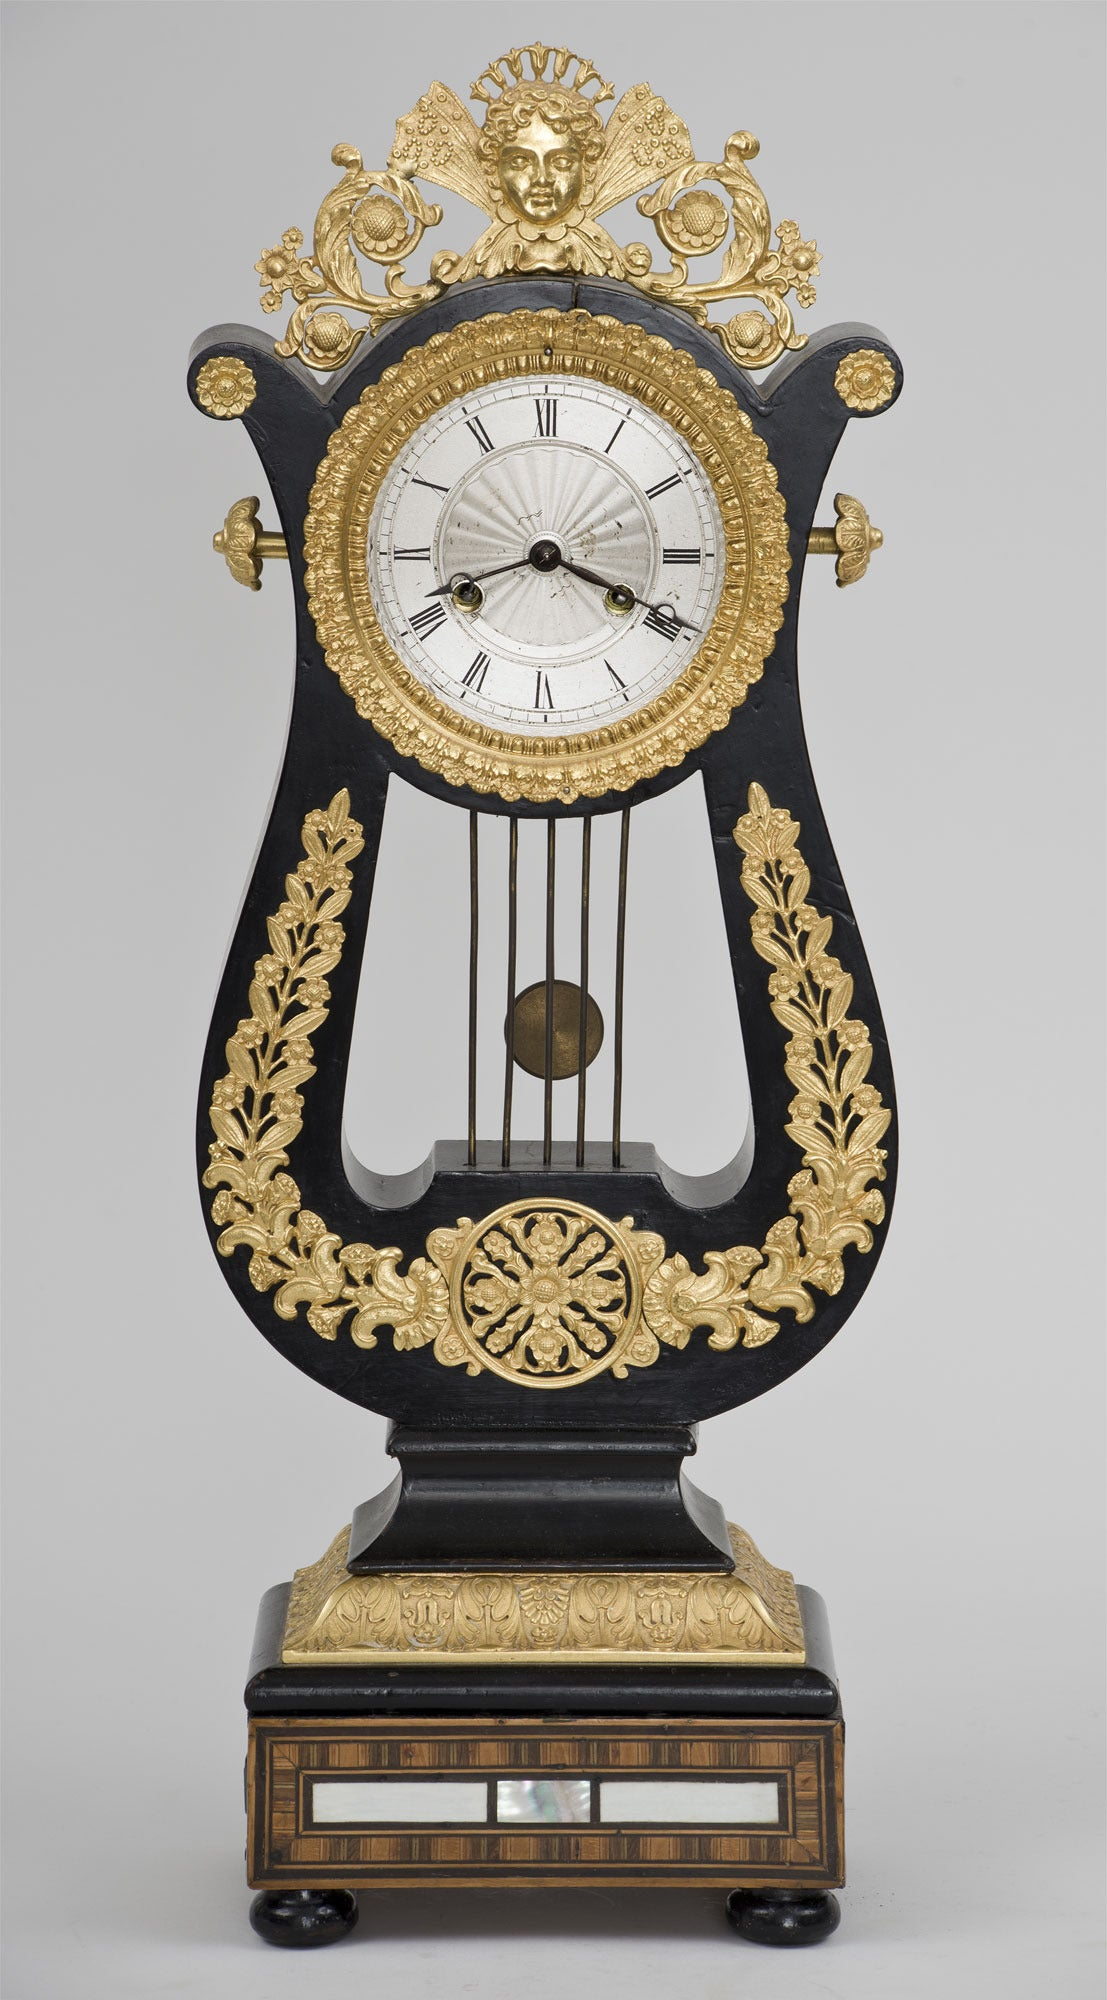 French lyre-shaped ebonized gilt bronze mantel clock with eight-day movement, silvered Roman chapter disc, bell striking on the hour and the half hour. The case with foliate and figural ormolu mounts, the base inlaid with rosewood and